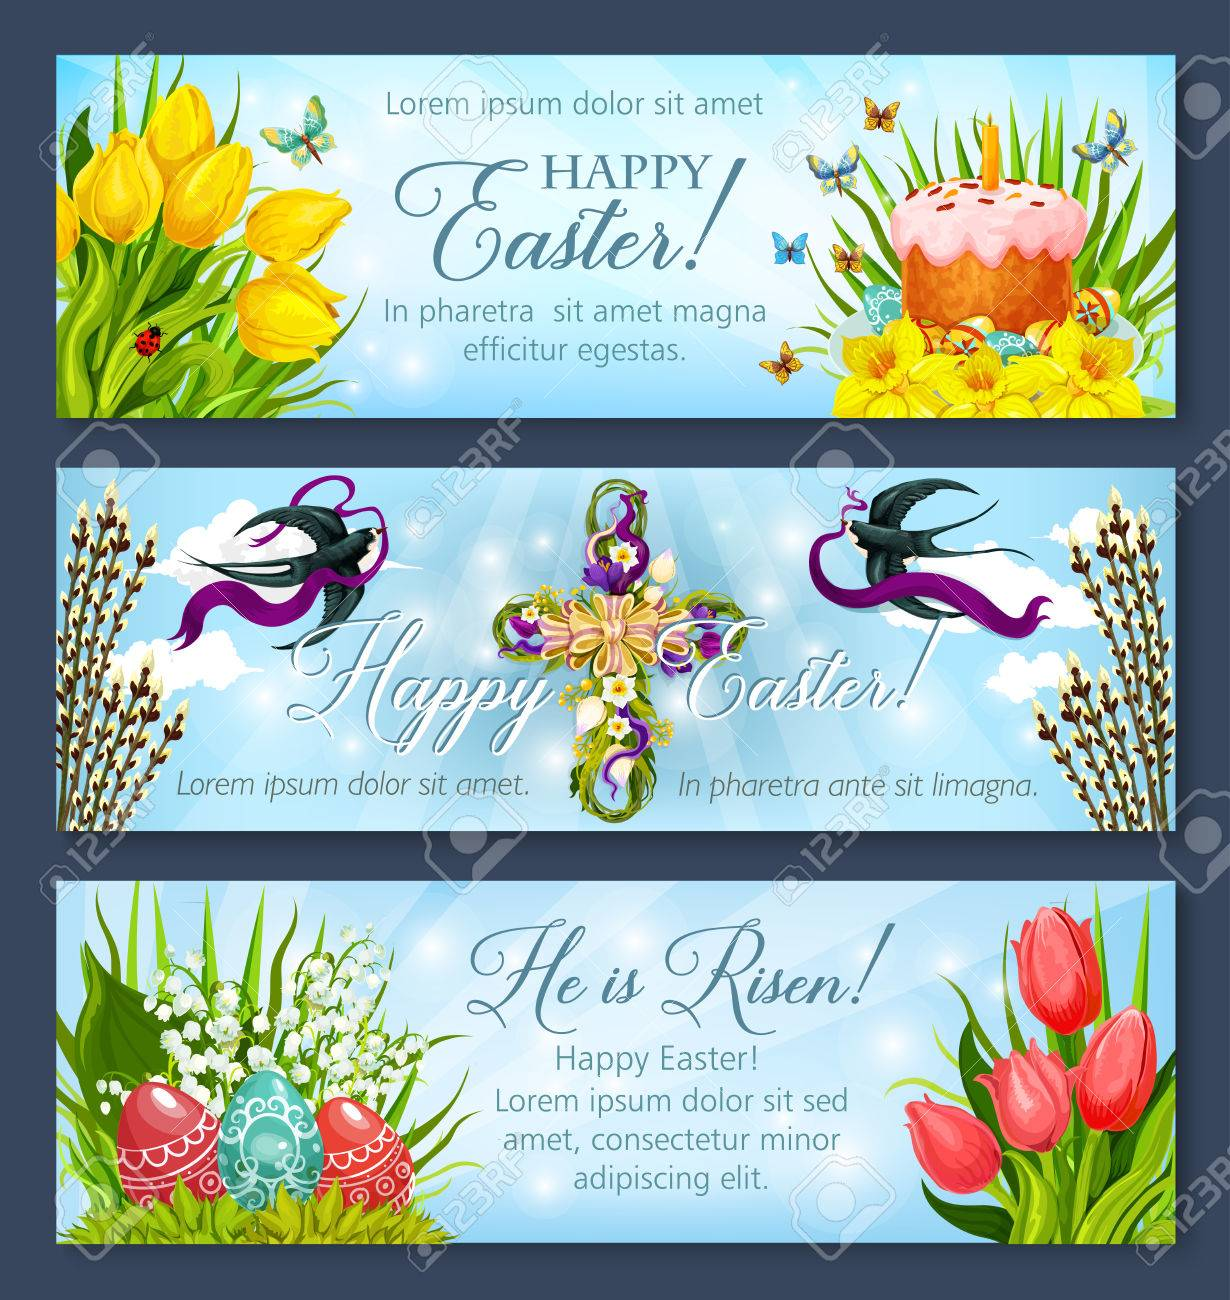 Happy Easter Greetings Banner Template Set Easter Egg And Cake